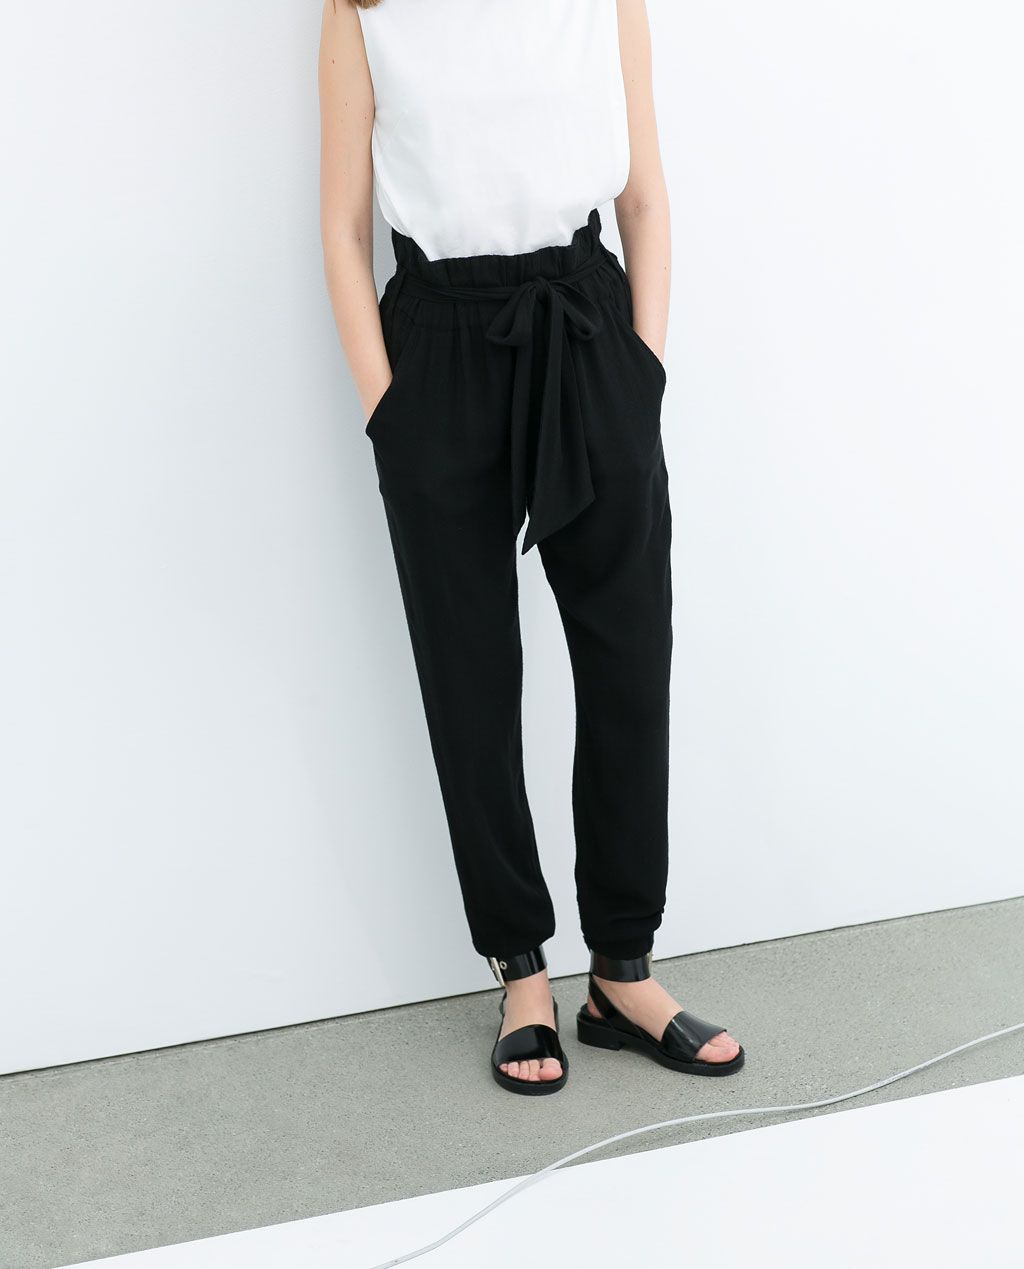 PANTALON AVEC CEINTURE de Zara - 29,95 EUR Looks amazing on a slim figure